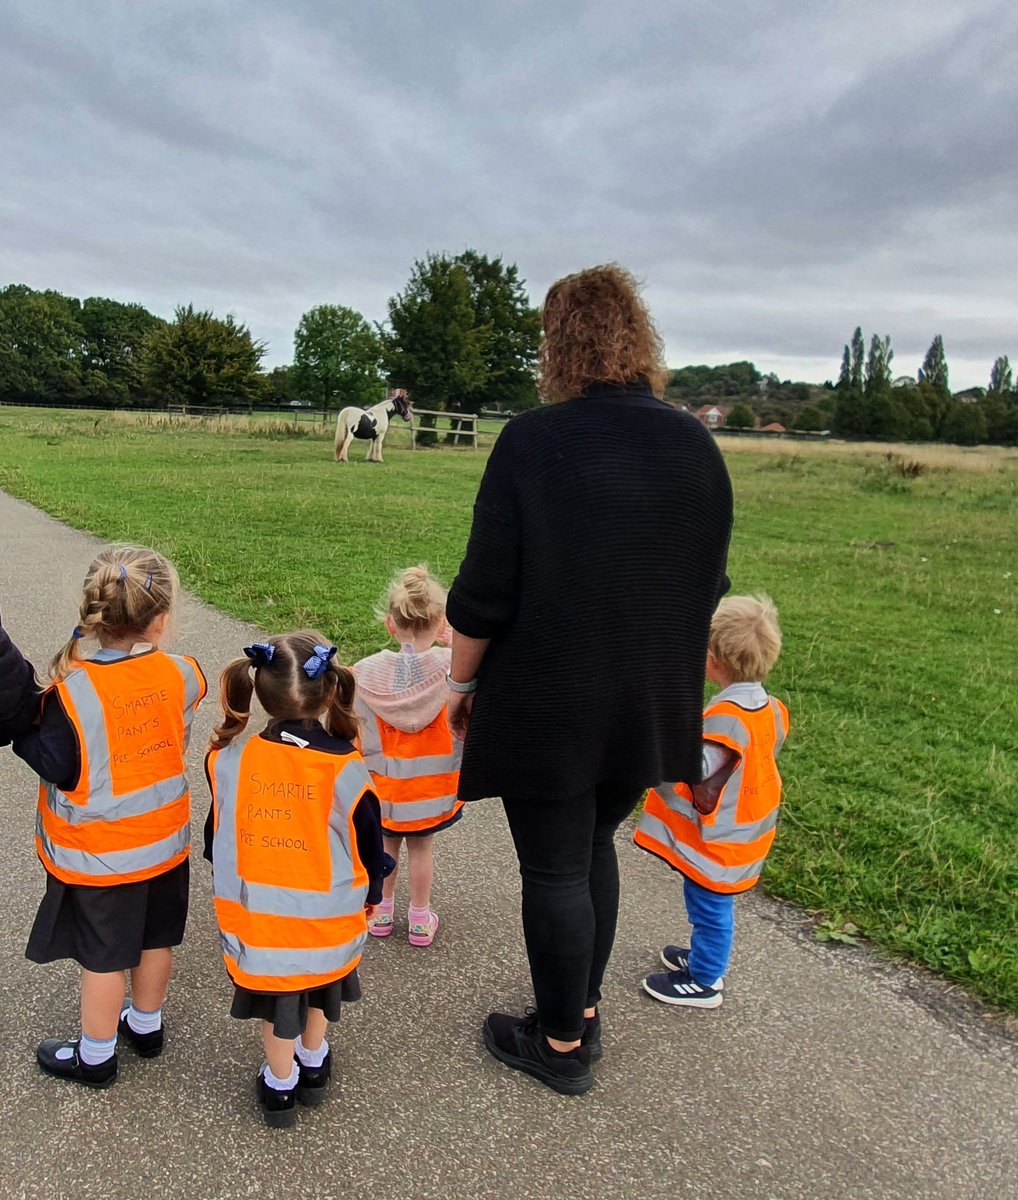 A lovely walk to the West Common today to see the horses! We collected 21 conkers!  #fantasticfriday #smartiepants #lincolnuk https://t.co/JgOdGdWwOU